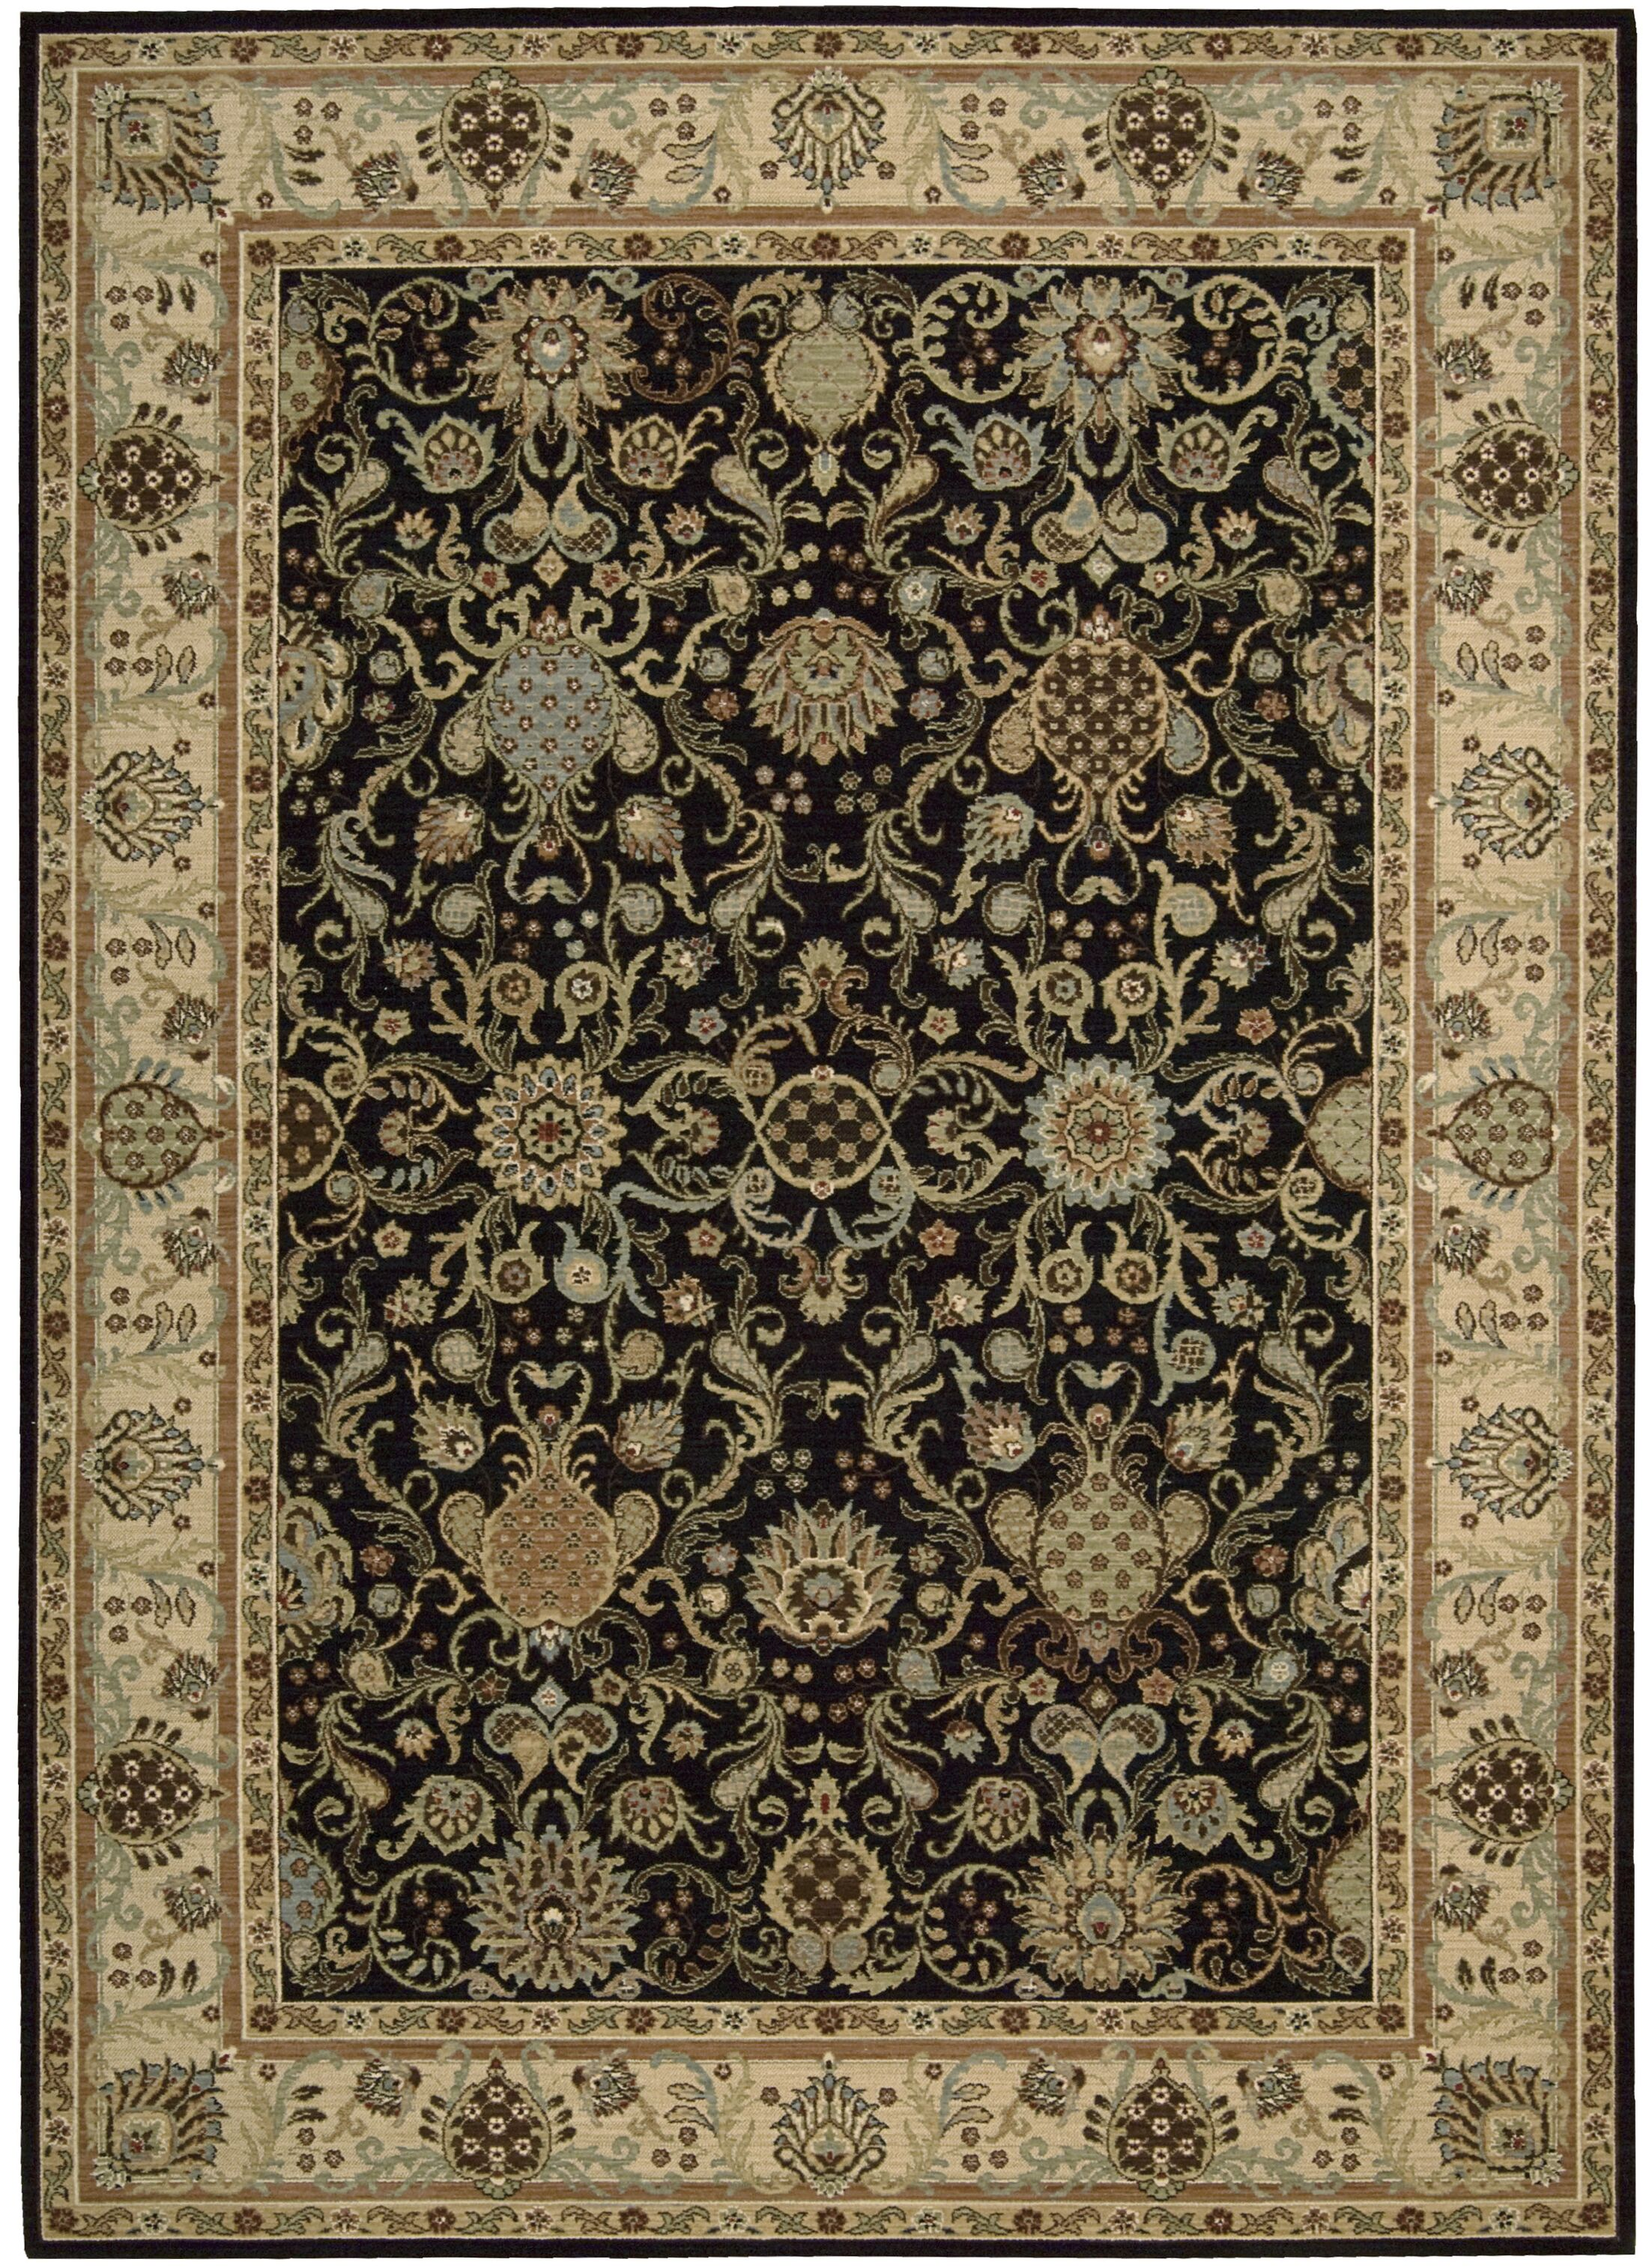 Lumiere Stateroom Onyx Area Rug Rug Size: Rectangle 9'6